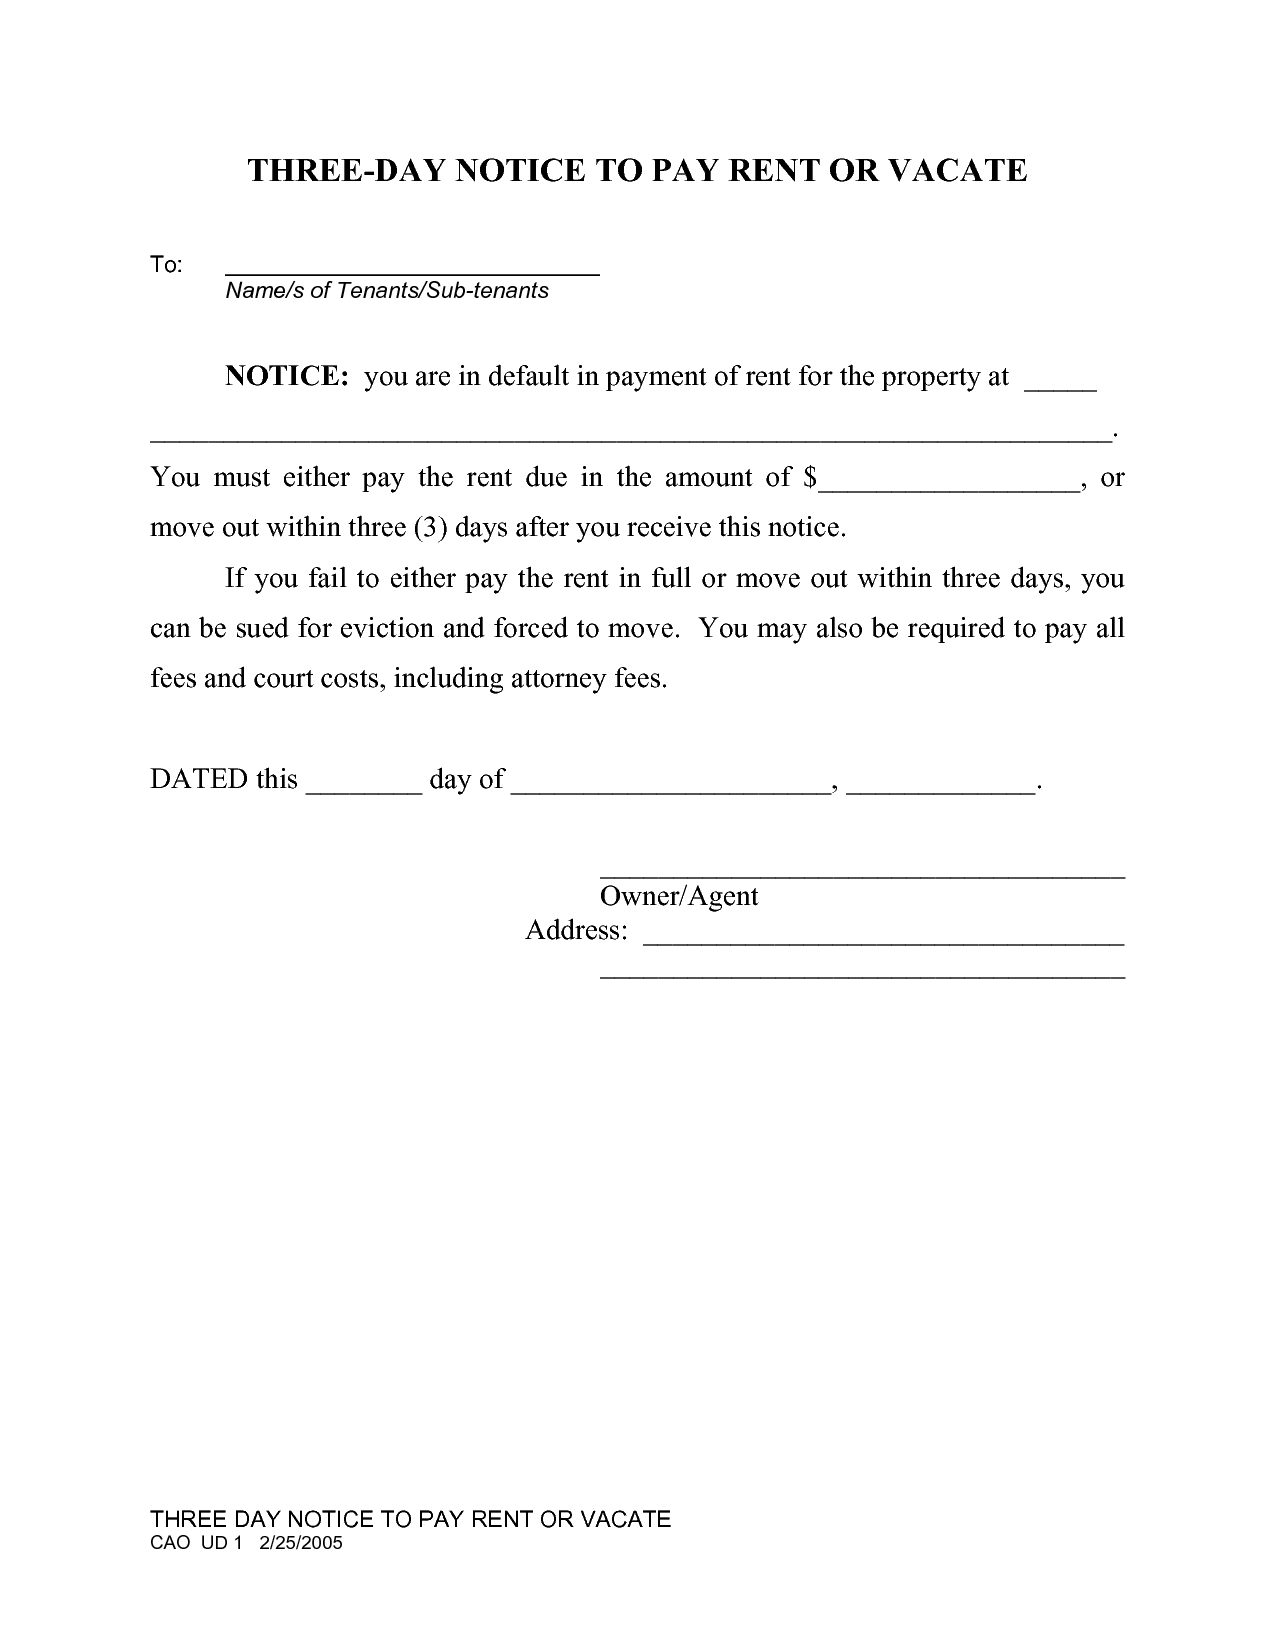 Eviction Notice Template  Scope Of Work Template  Ideas For The